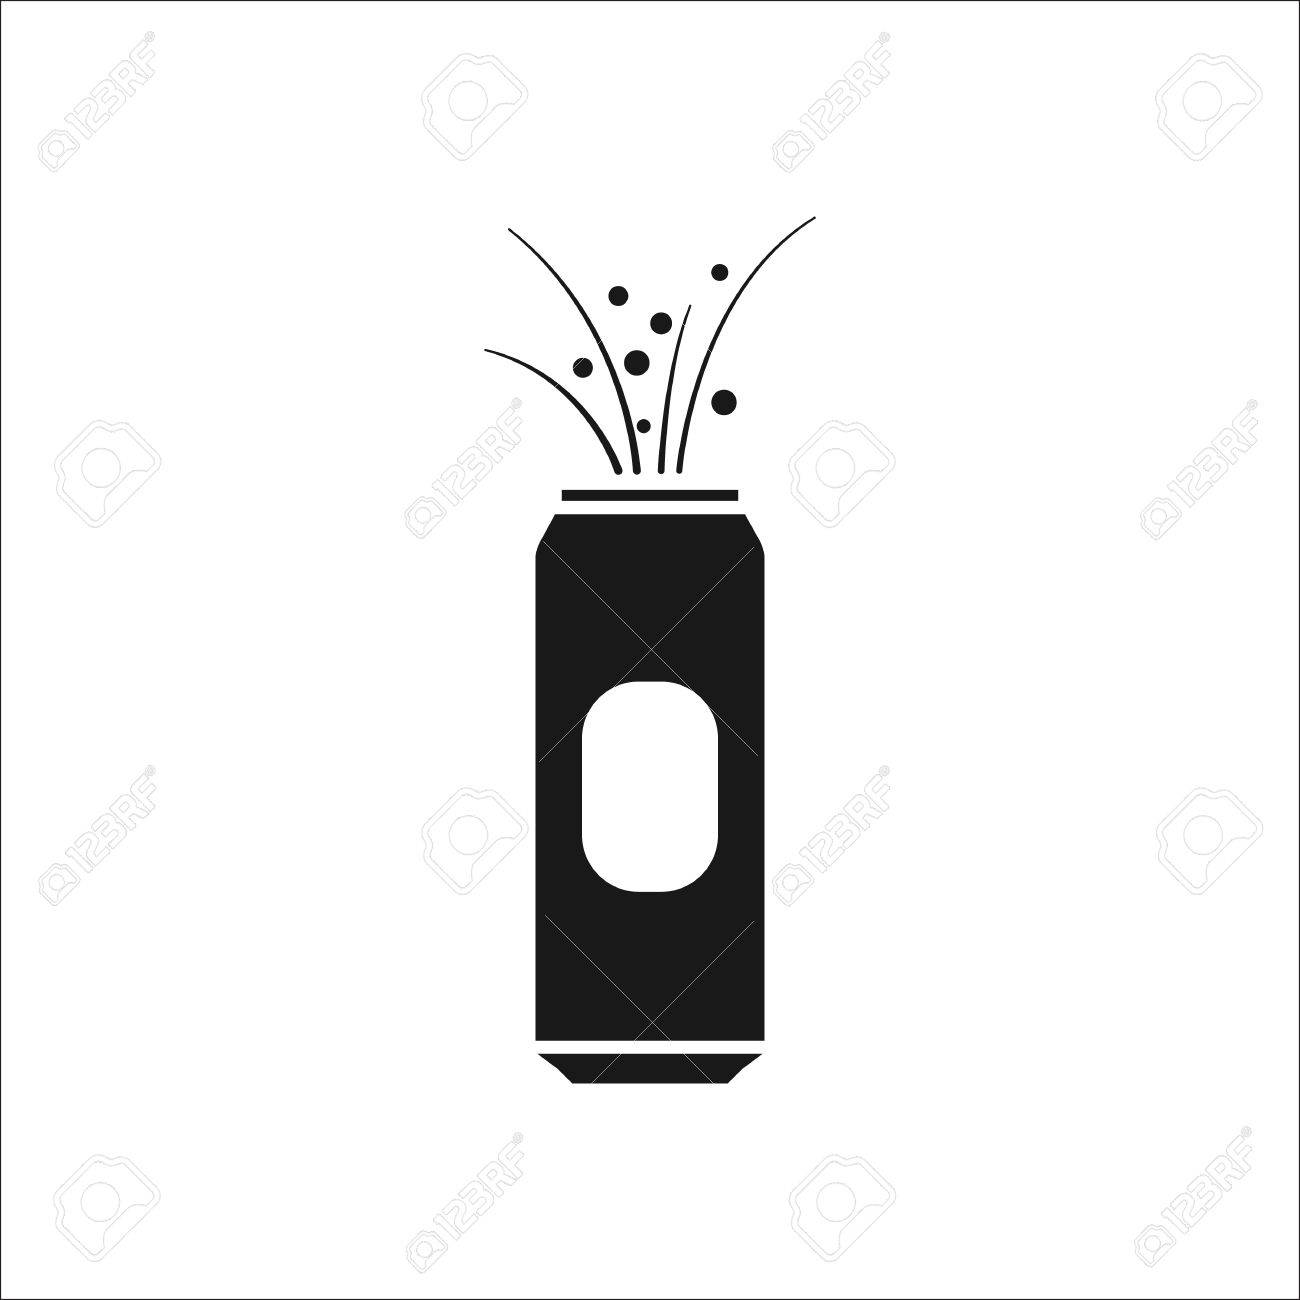 Beer can opened explosion symbol sign simple icon on background beer can opened explosion symbol sign simple icon on background stock vector 61539739 buycottarizona